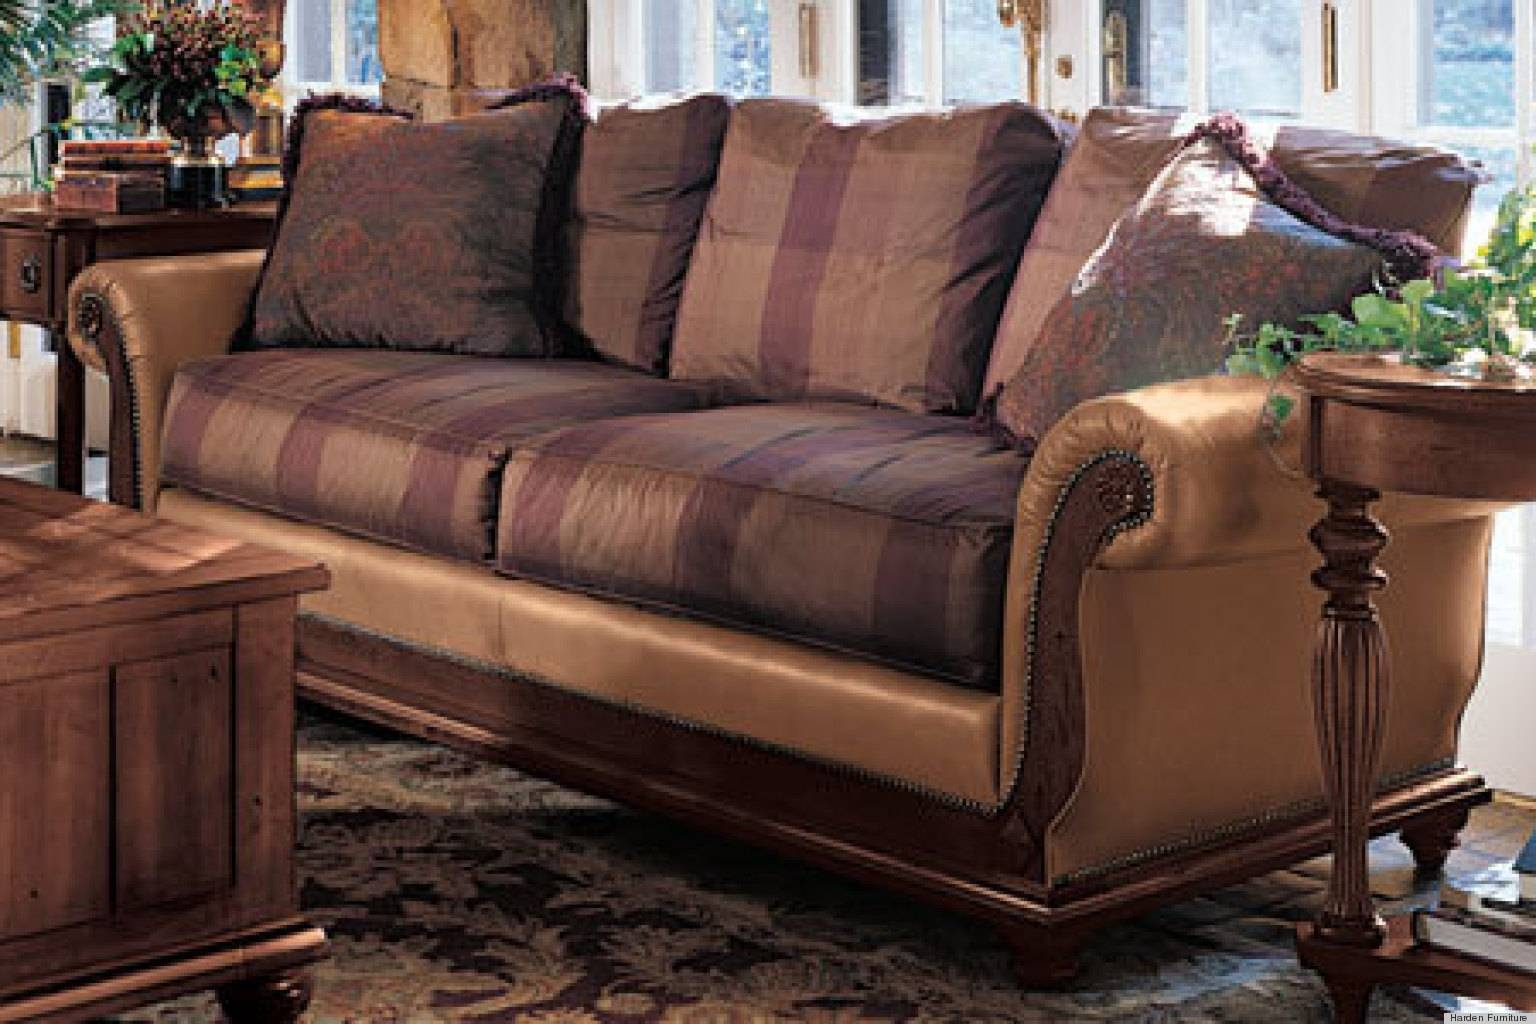 Craigslist Sofa BedSofas Center Sofa Beds For In Uksofa Uk Craigslist